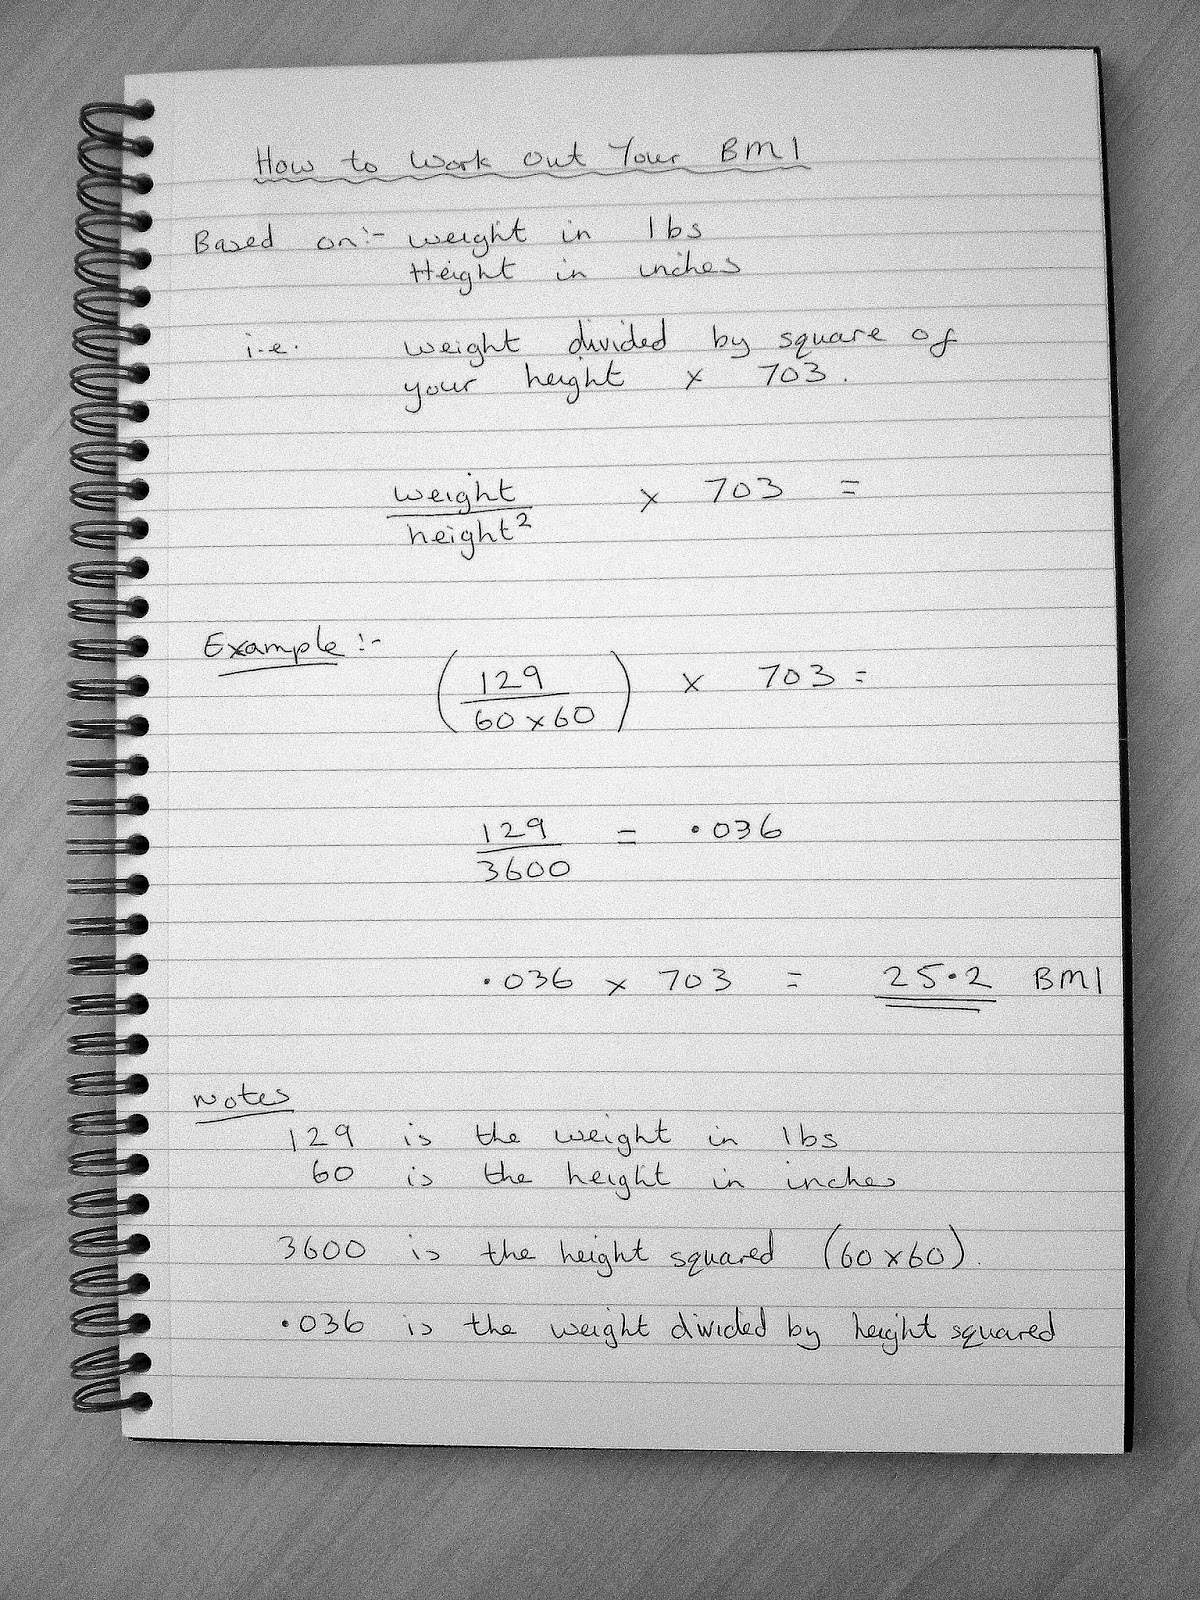 Example Of Formula For How To Work Out Your Bmi Body Mass Index Weight  Divided Health